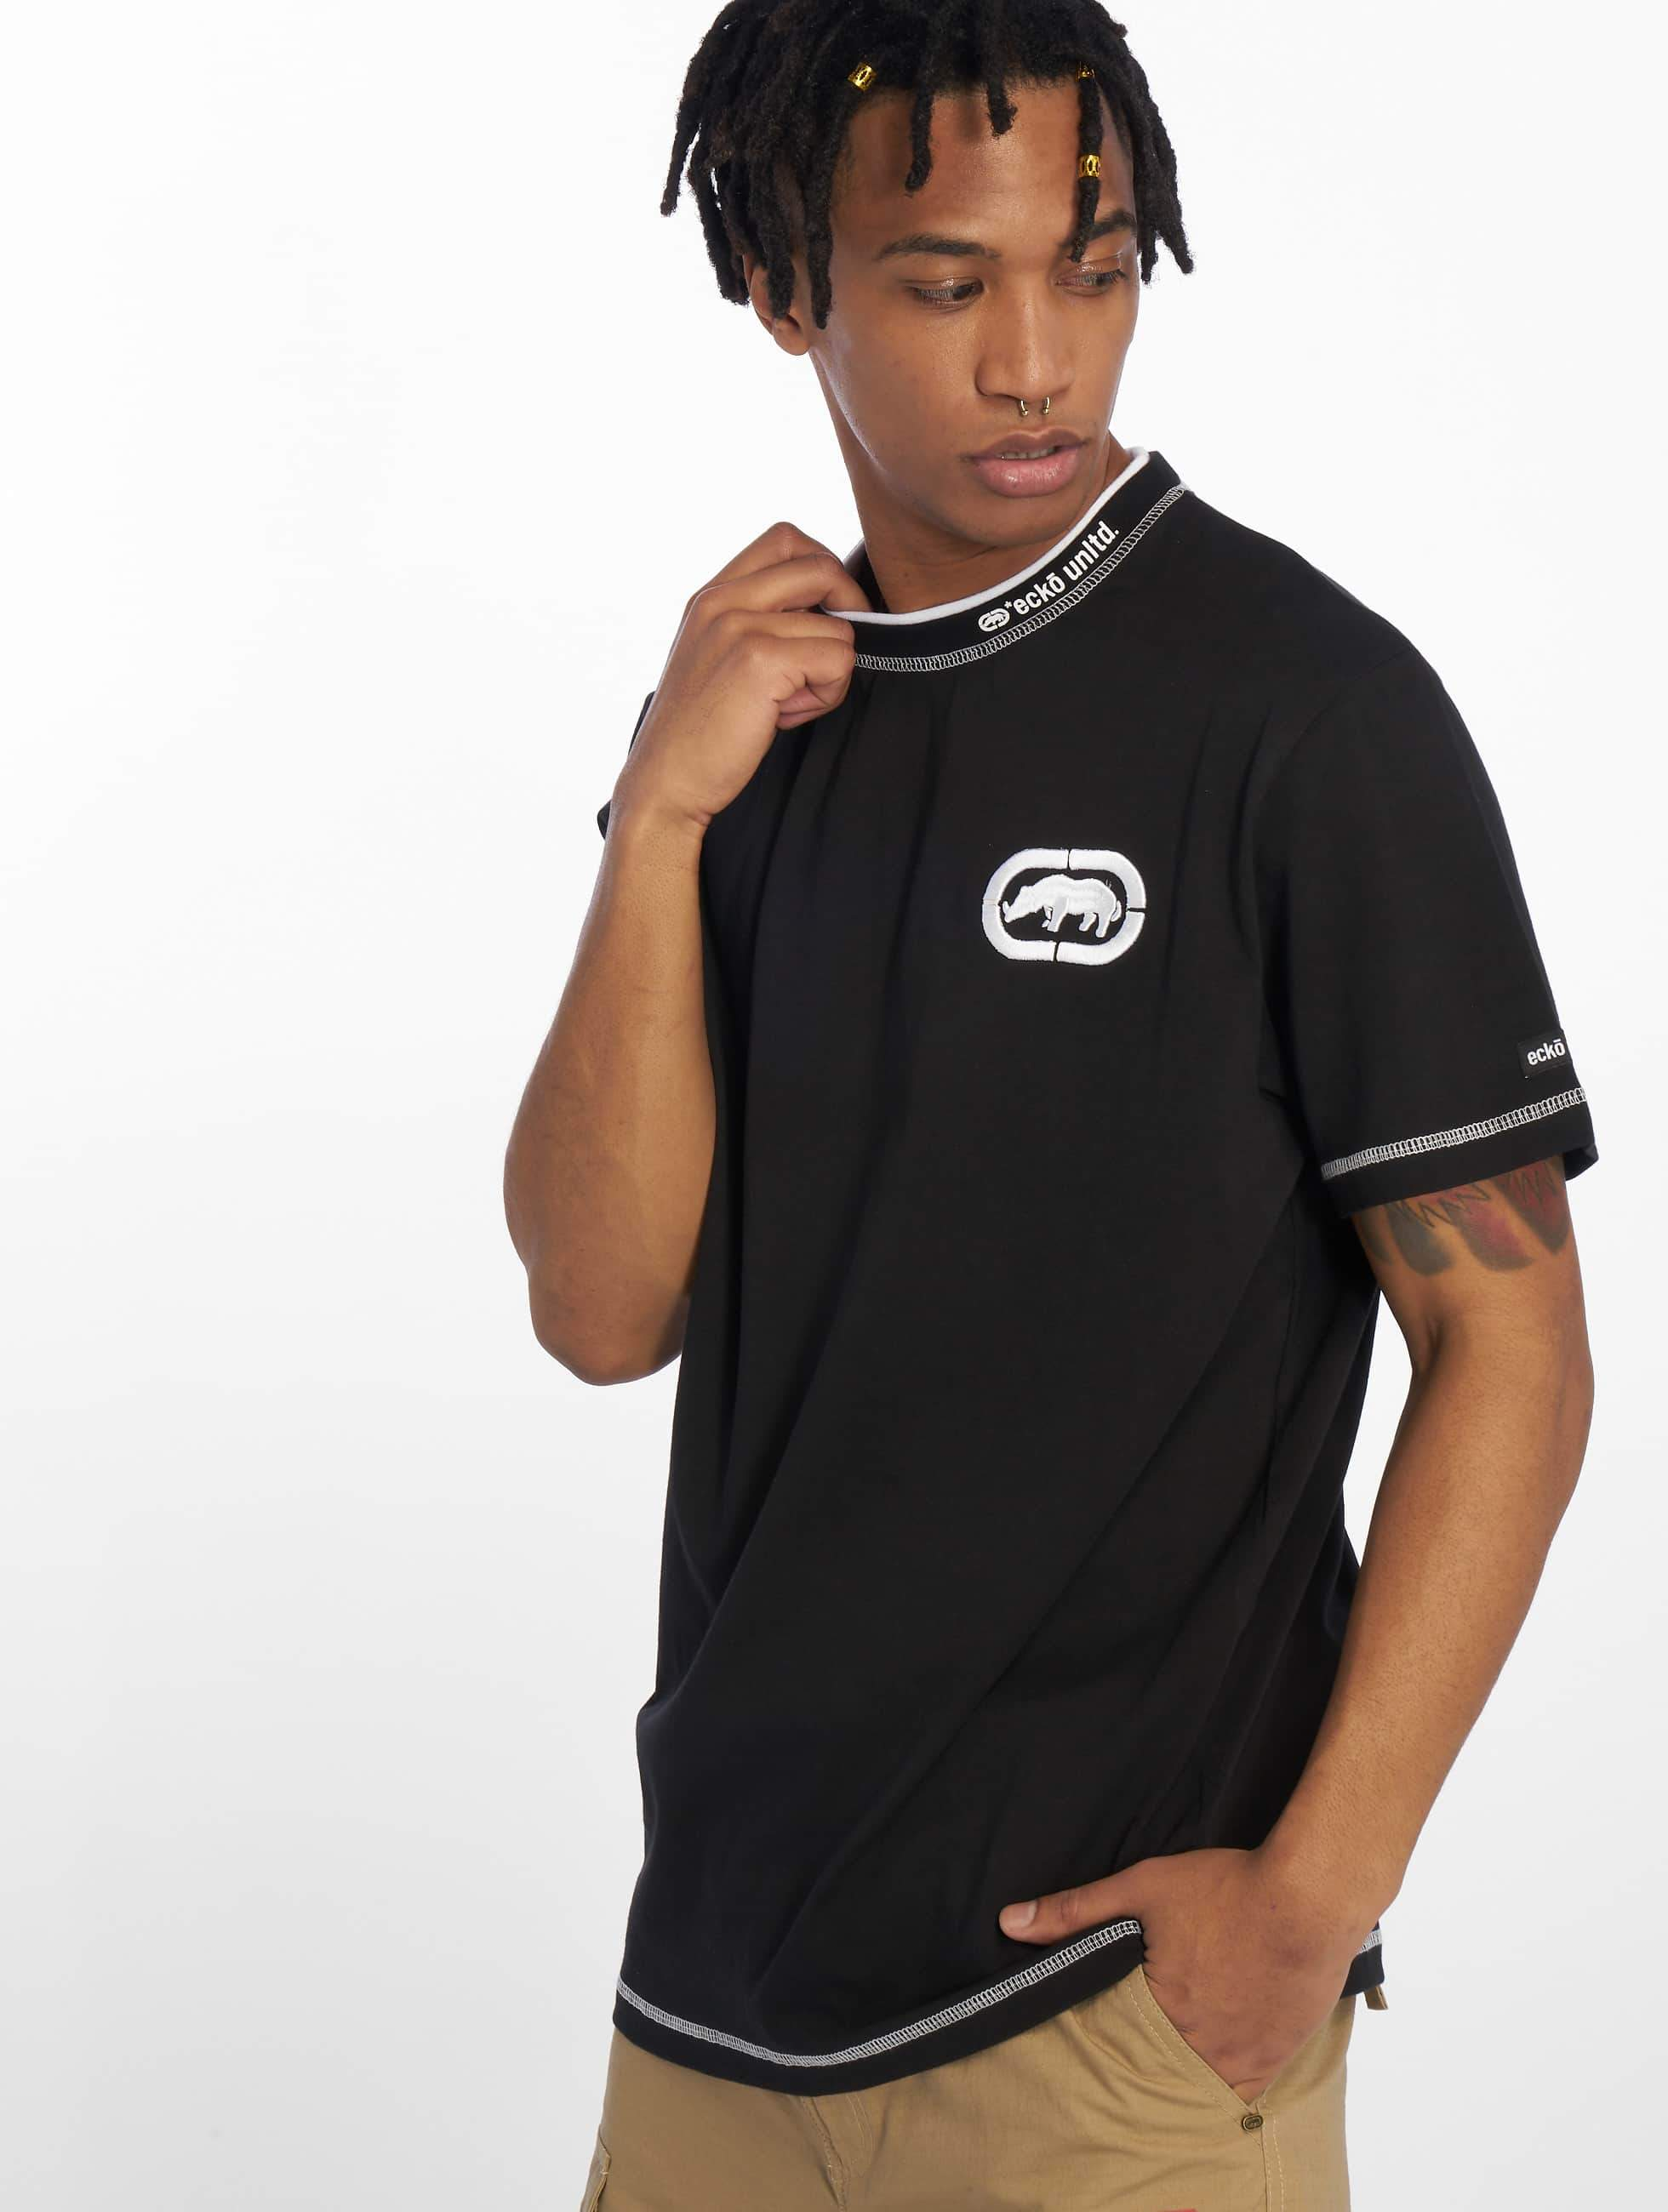 Ecko Unltd. / T-Shirt Far Rockaway in black XL